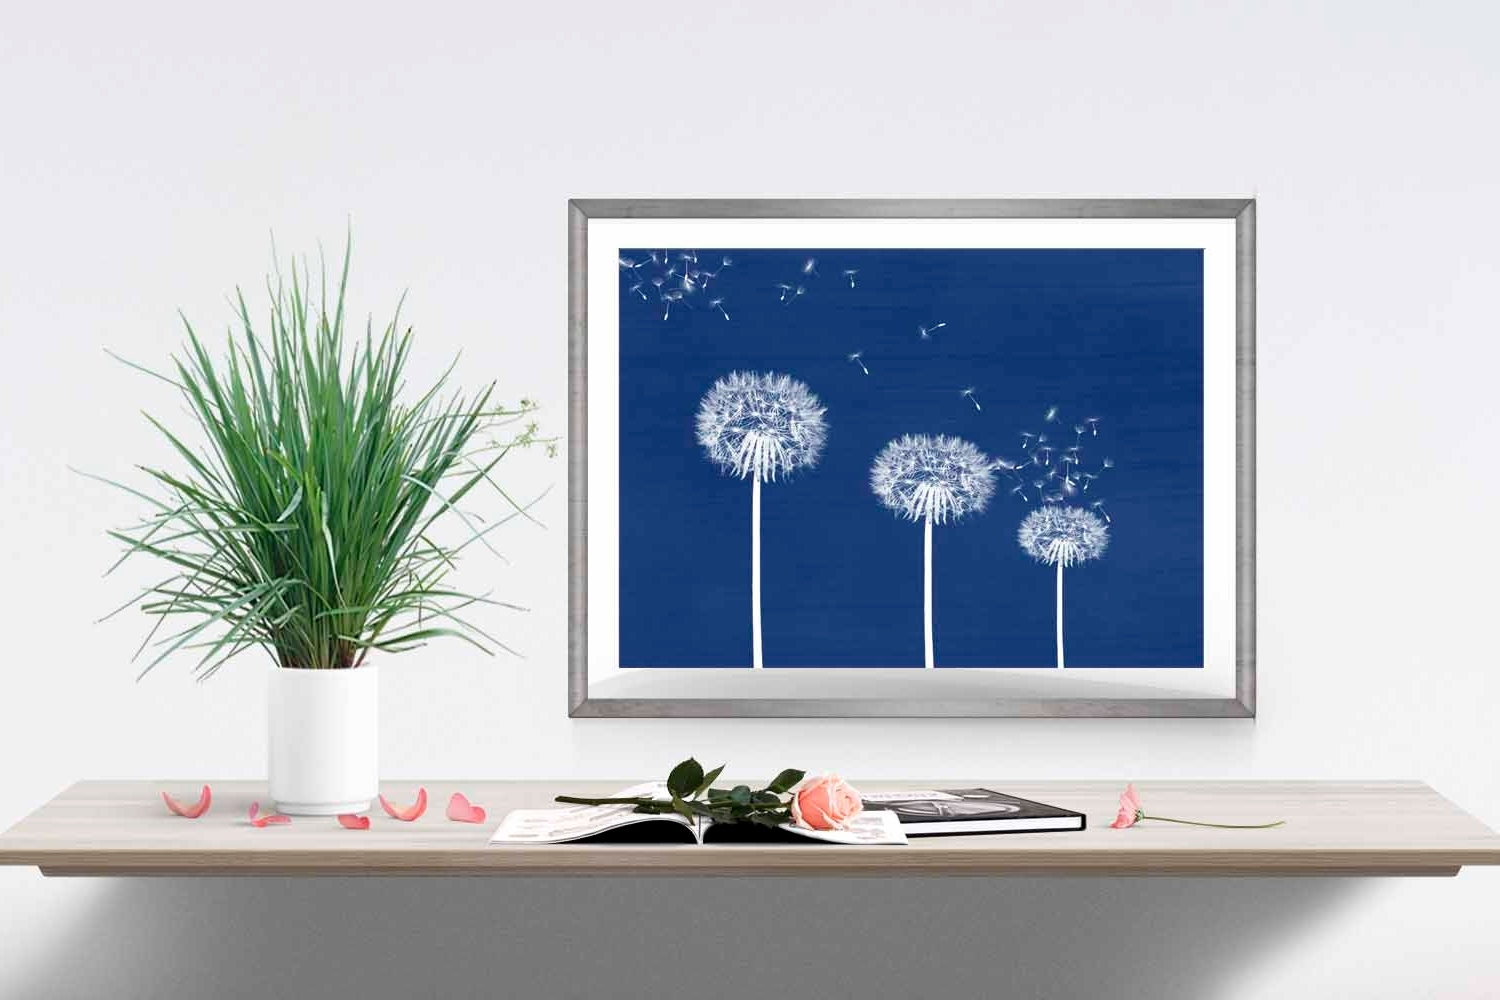 Blue Wall Art For Bedroom – Blogtipsworld With Best And Newest Navy Blue Wall Art (View 1 of 15)